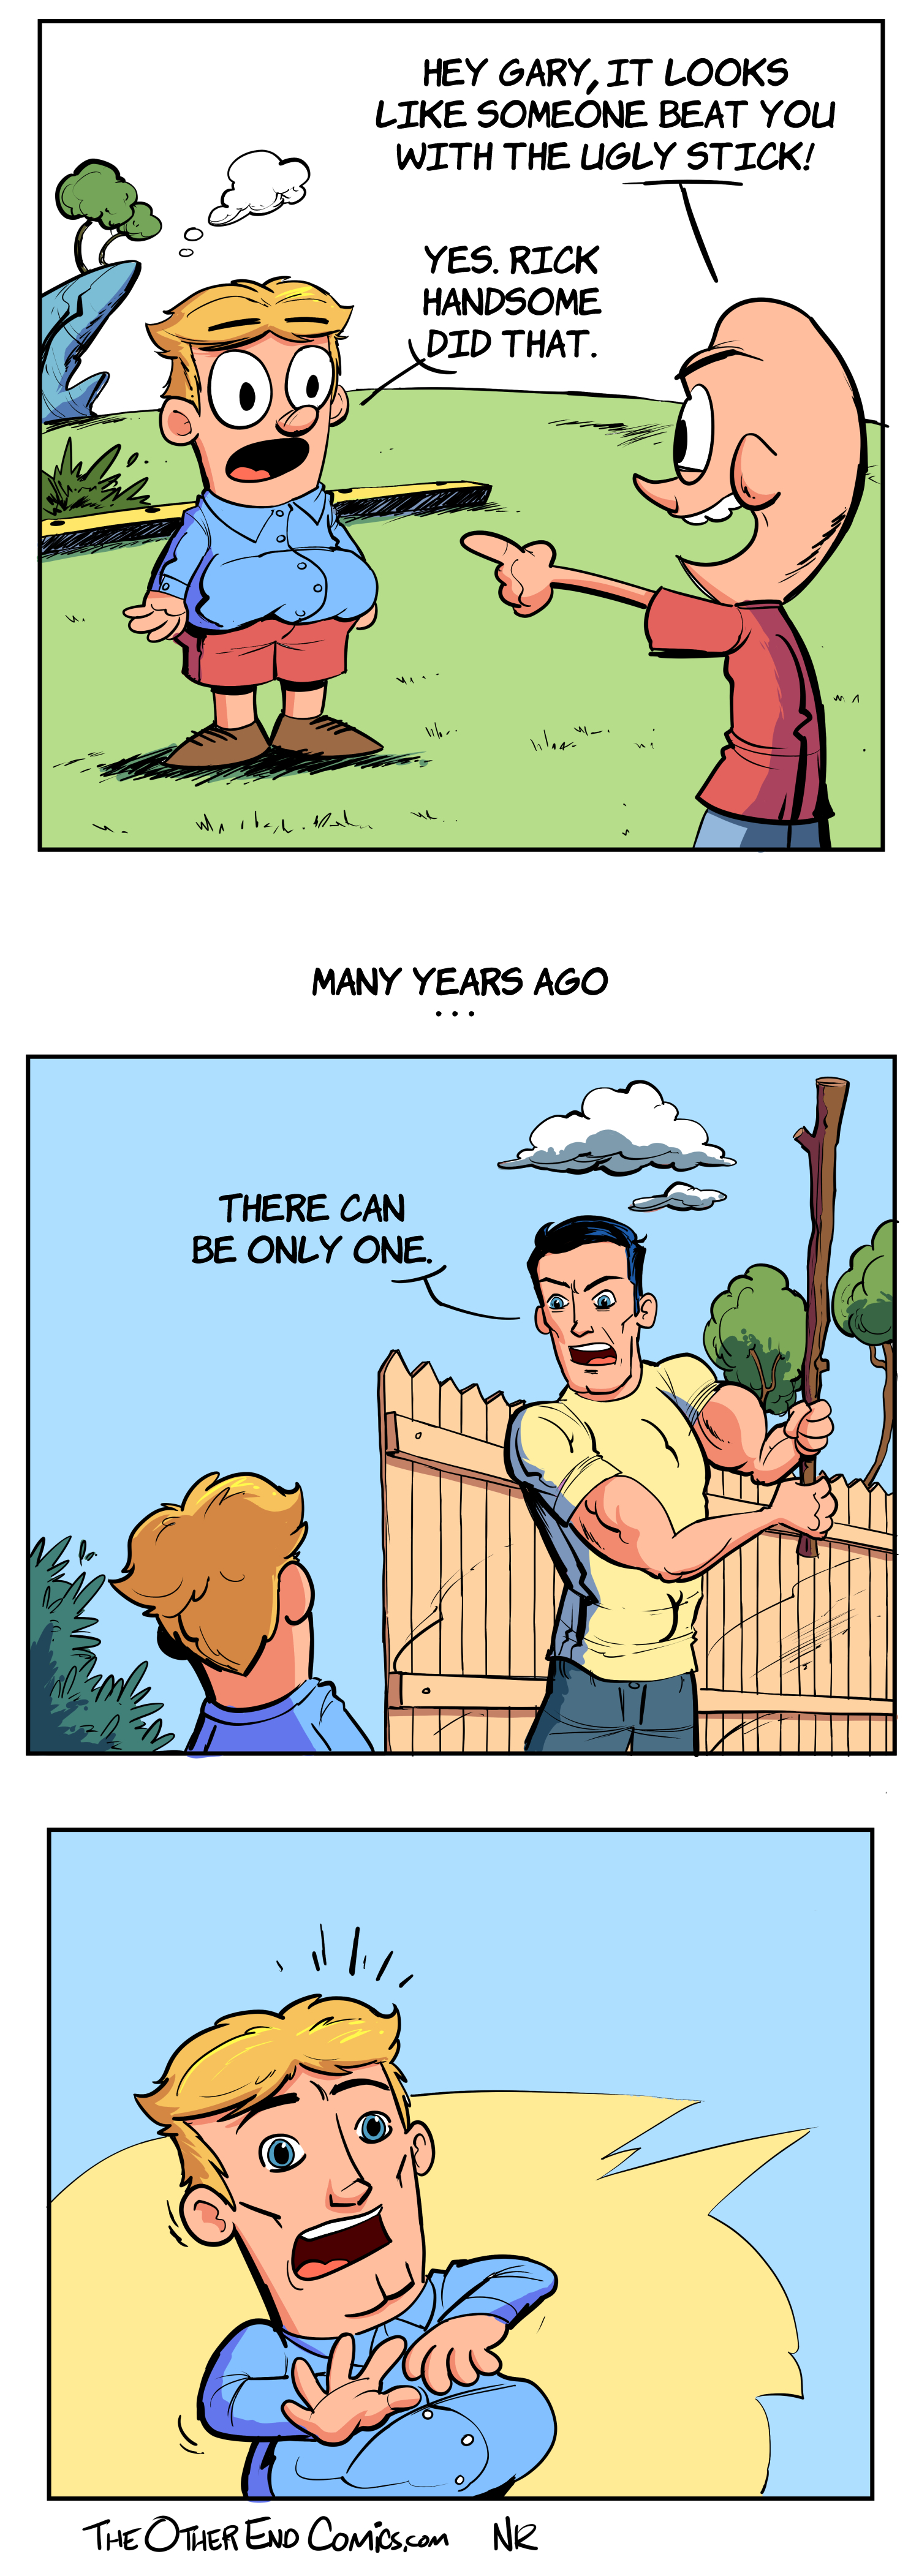 That's not even what the ugly stick looks like. This comic is so fake.